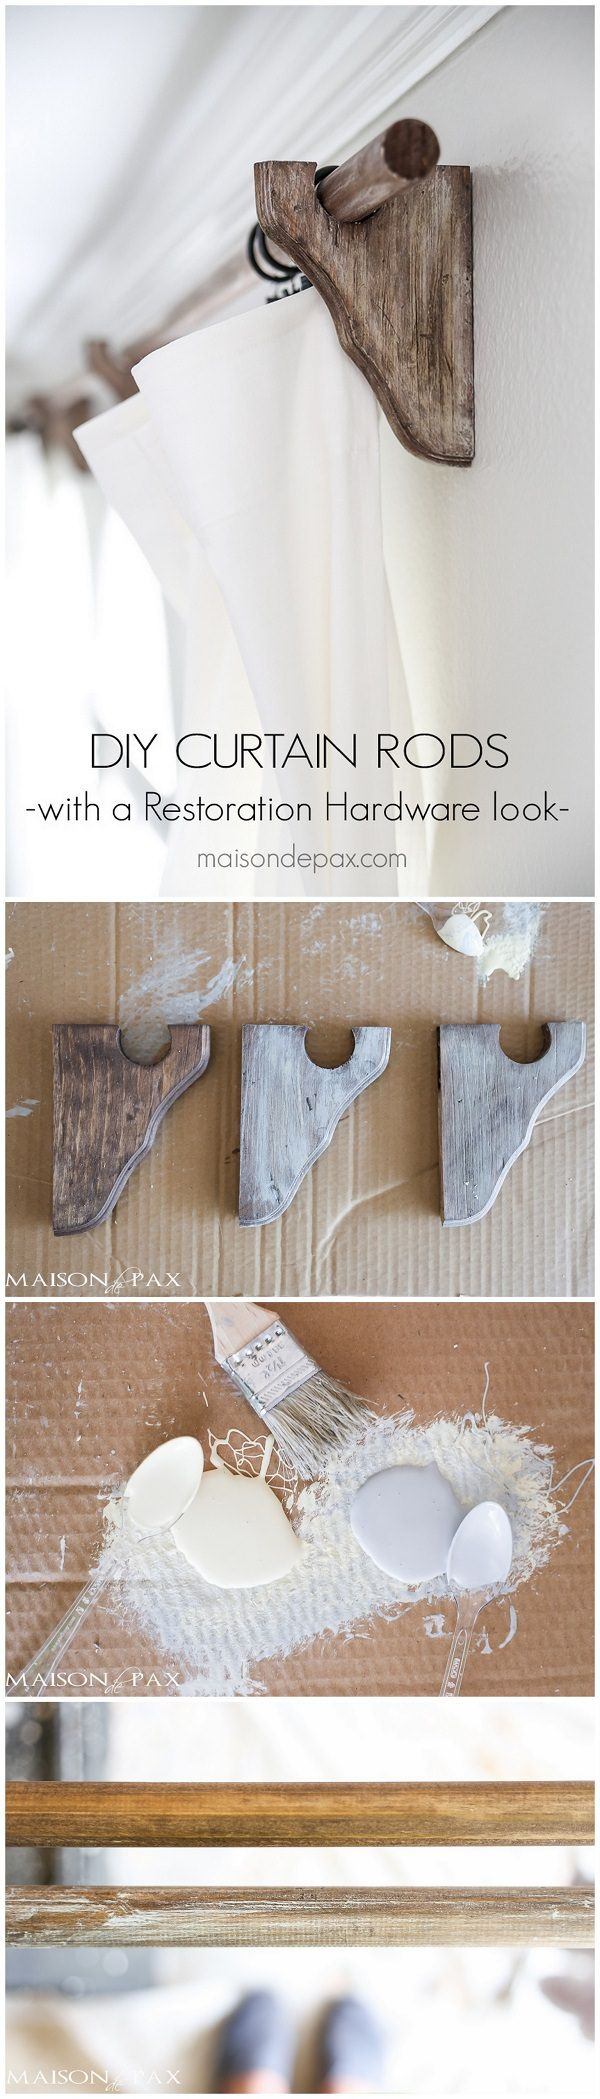 So today we're sharing over 20 DIY essentials for you to create simple farmhouse style at your very own home.